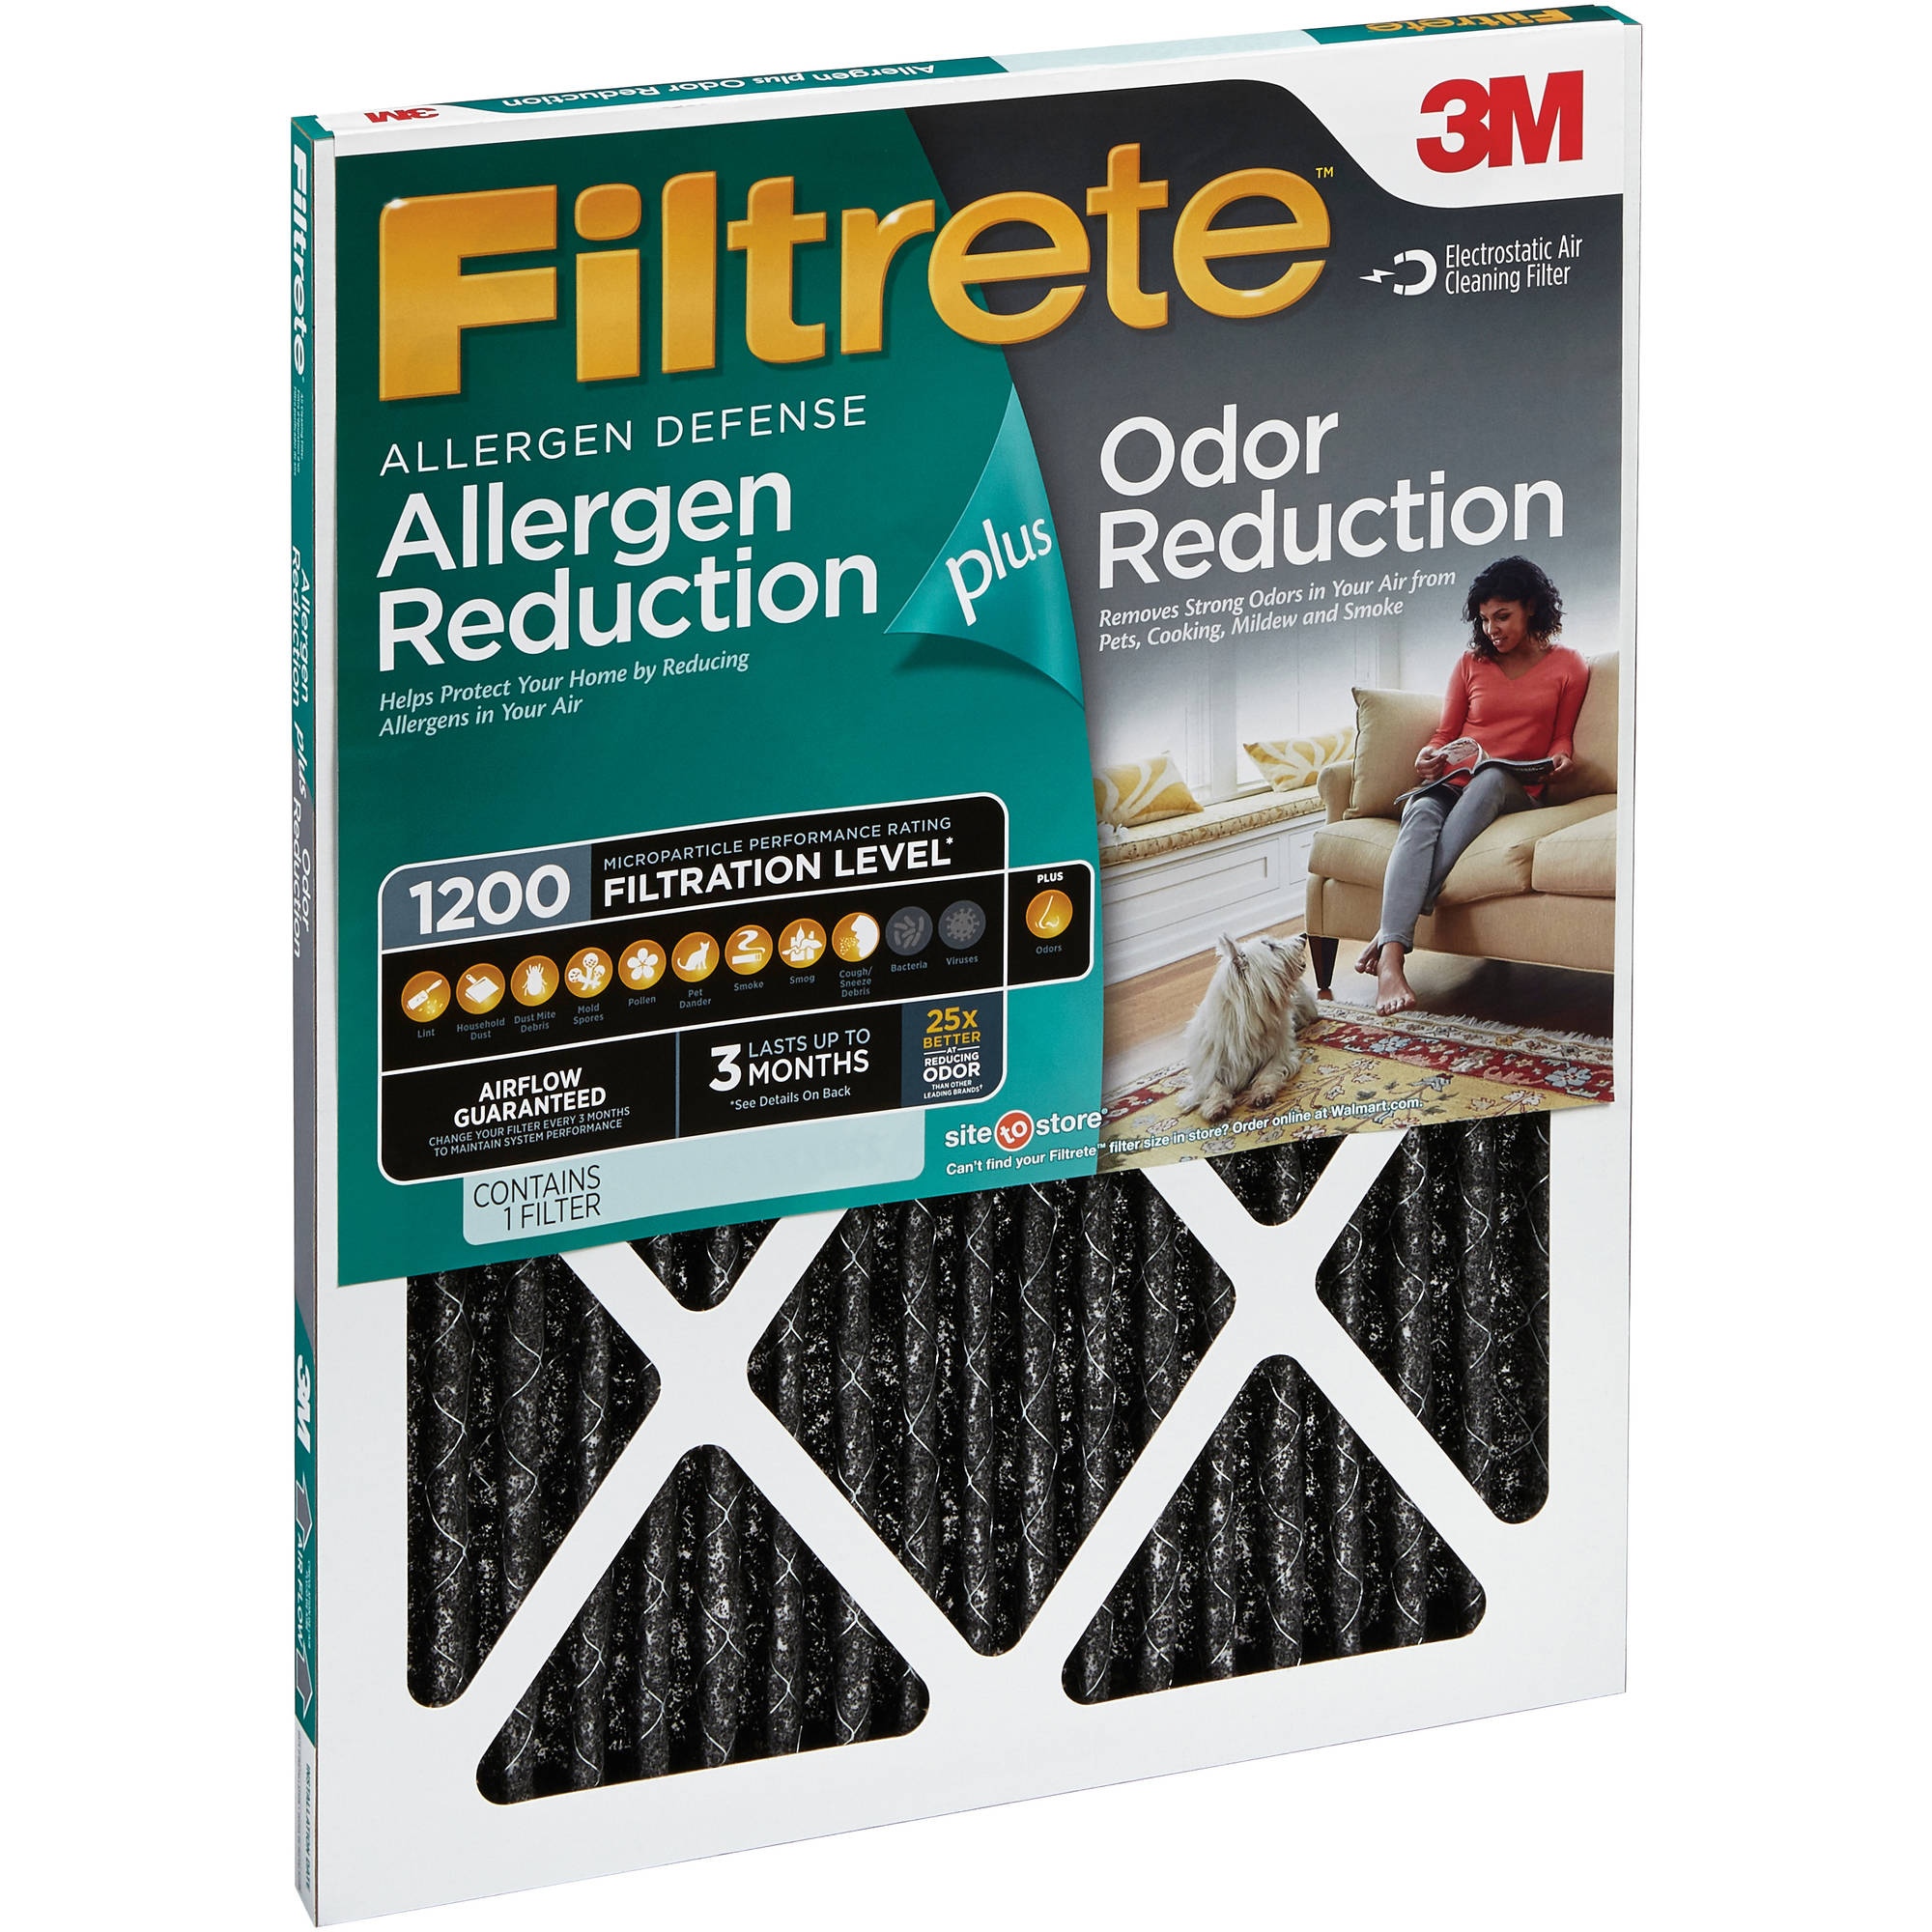 Air filters walmart filtrete allergen plus odor reduction hvac furnace air filter 1200 mpr 18 x 20 sciox Images